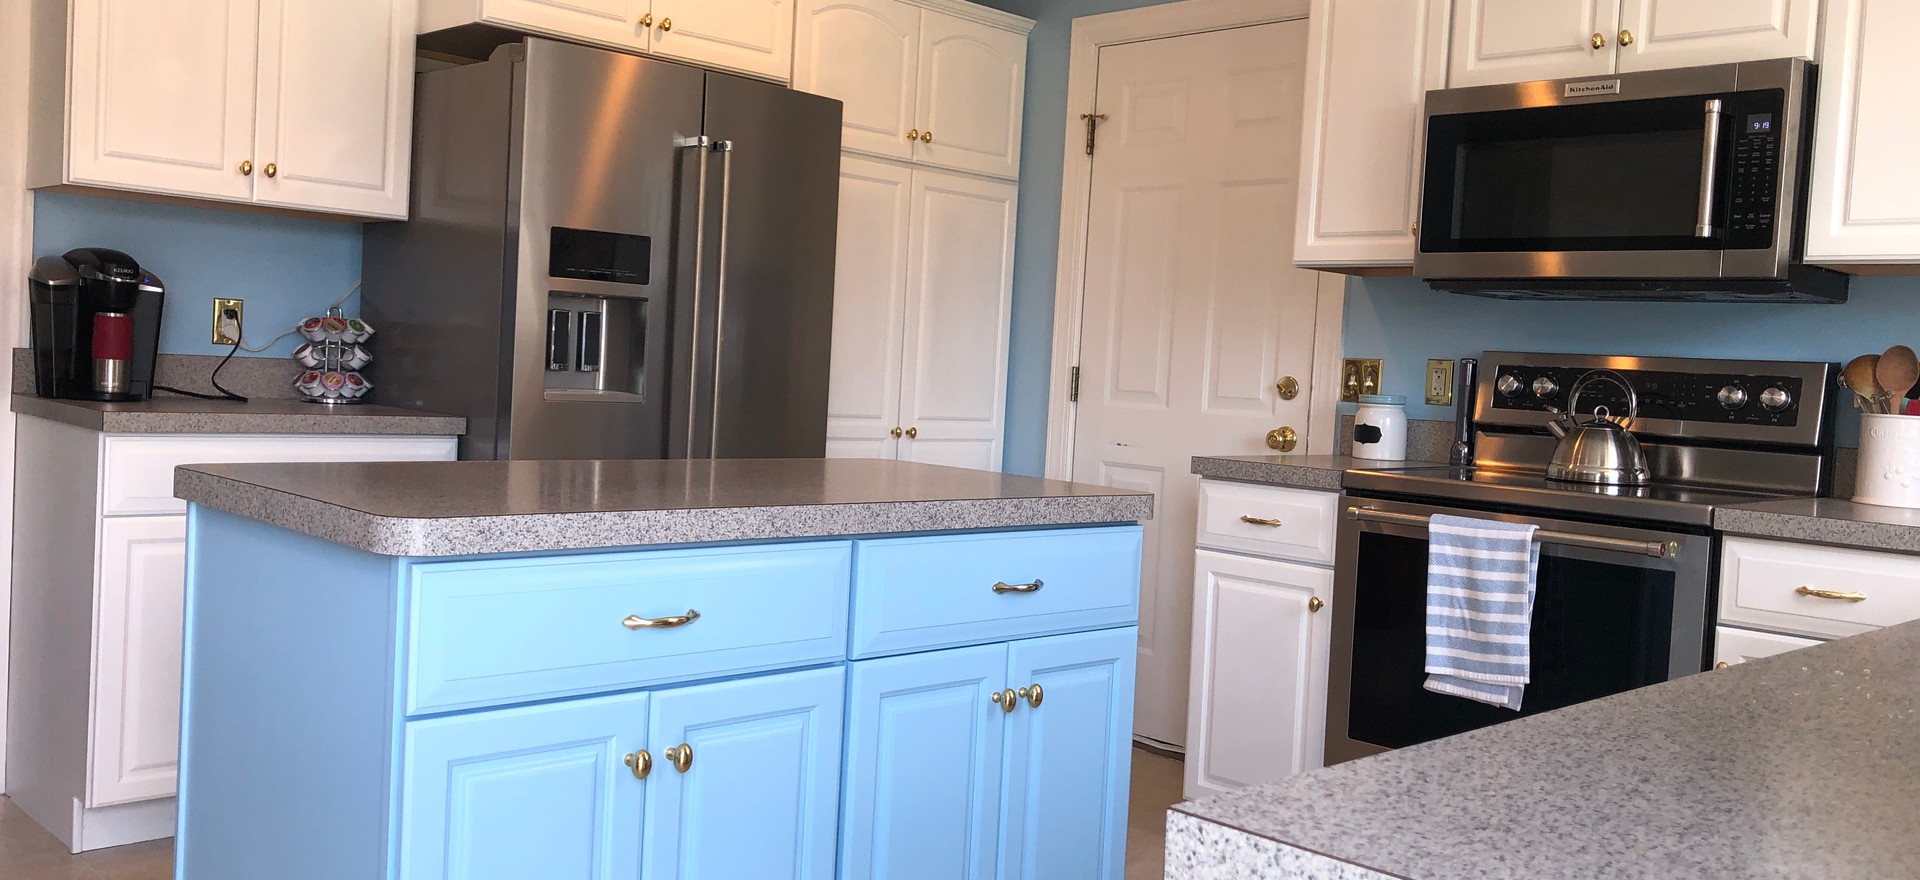 White Kitchen with Accent Blue Island to match walls